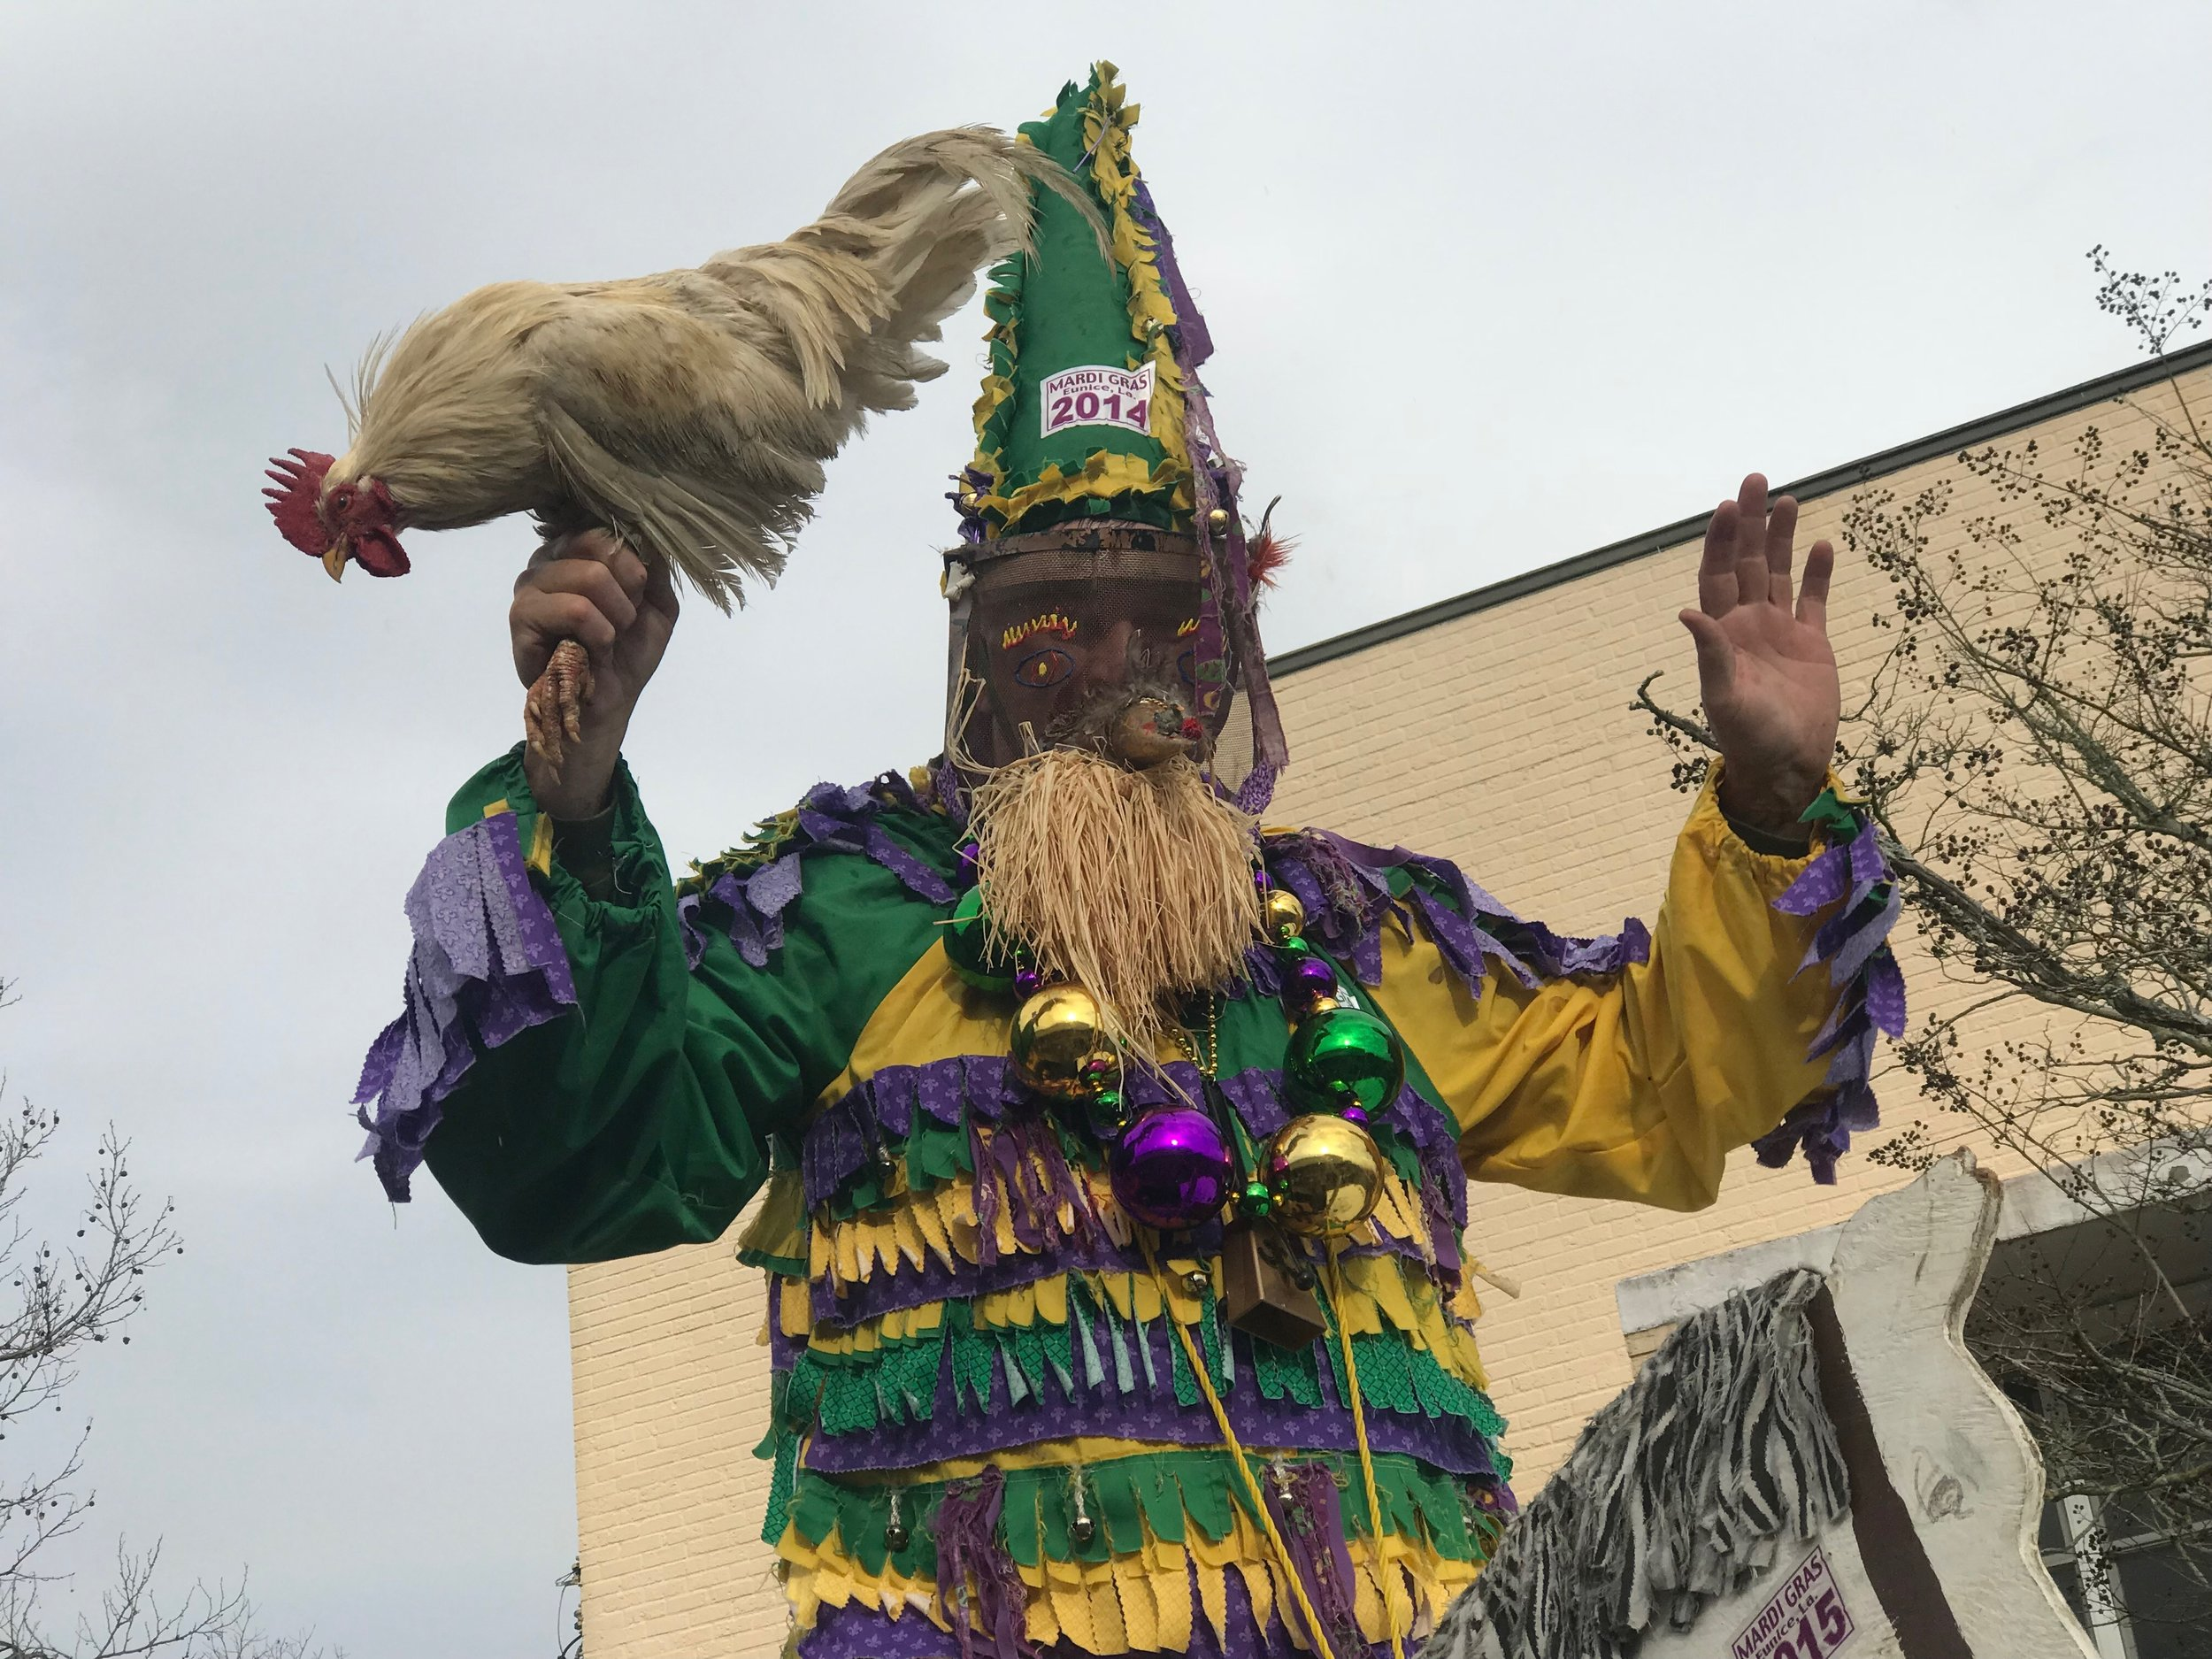 In the Cajun community of Eunice, Mardi Gras revelers wear traditional homemade costumes, and sometimes bring chickens to the parade.